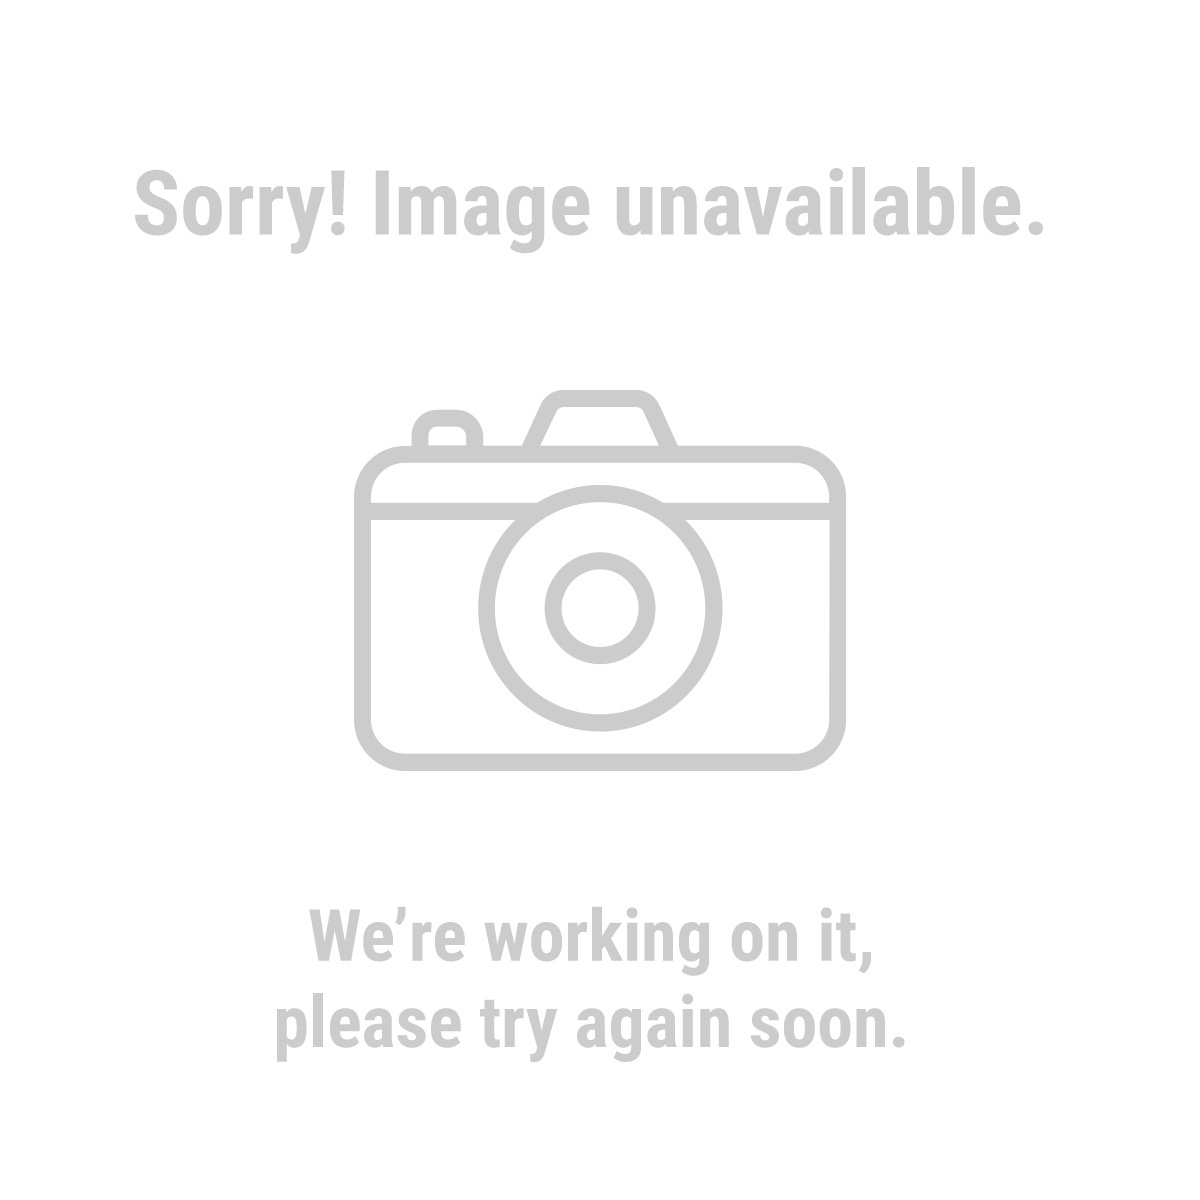 Warrior® 61547 3/32 in. Titanium Nitride Coated High Speed Steel Drill Bits,  Piece